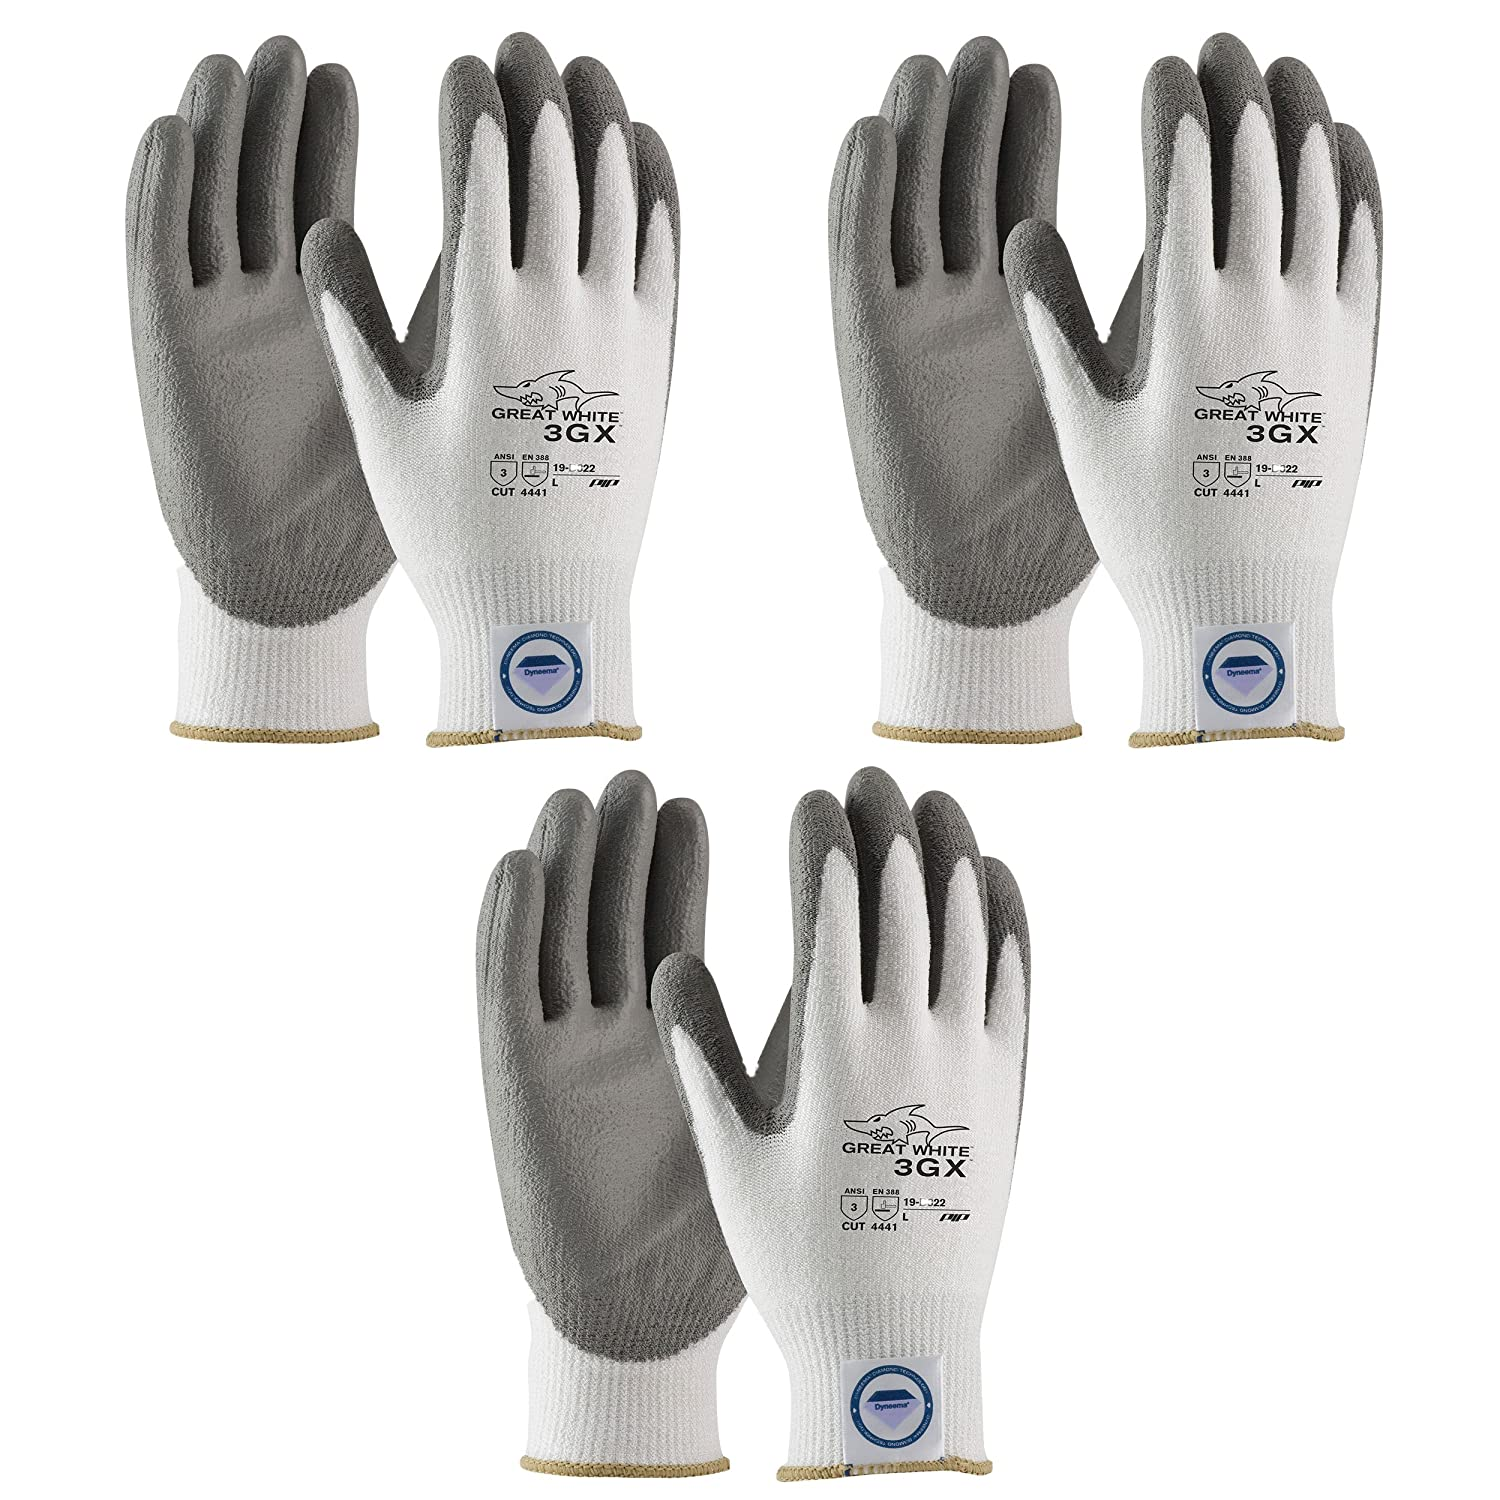 3 Pair Pack Great White 3GX 19-D322 Formerly (19-D622) Cut Resistant Work Gloves, ANSI Cut Level 3,Dyneema/Lycra with Polyurethane Coated Palm and Fingers, Gray/White (Large)